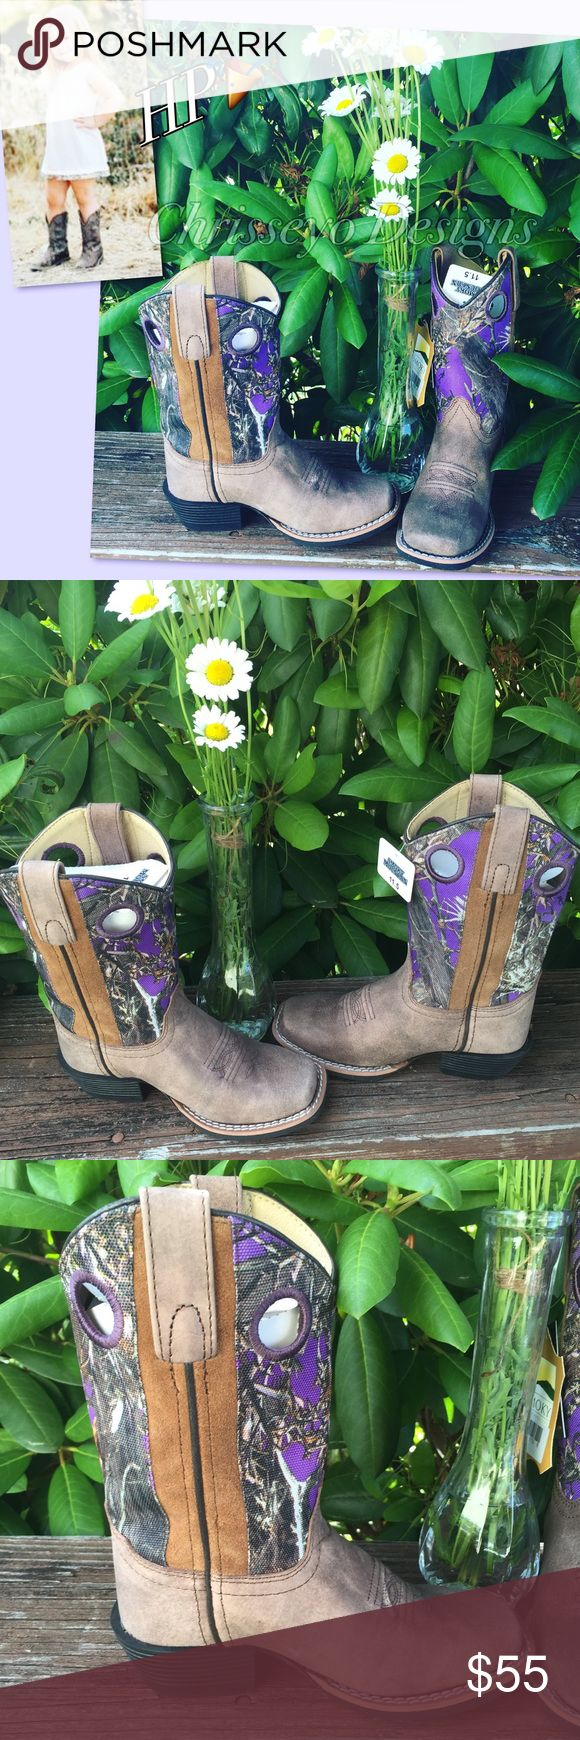 HOST PICK❤️ Leather & purple camo cowgirl boots💕 New in box leather, square toe, cowgirl boots Shoes Boots